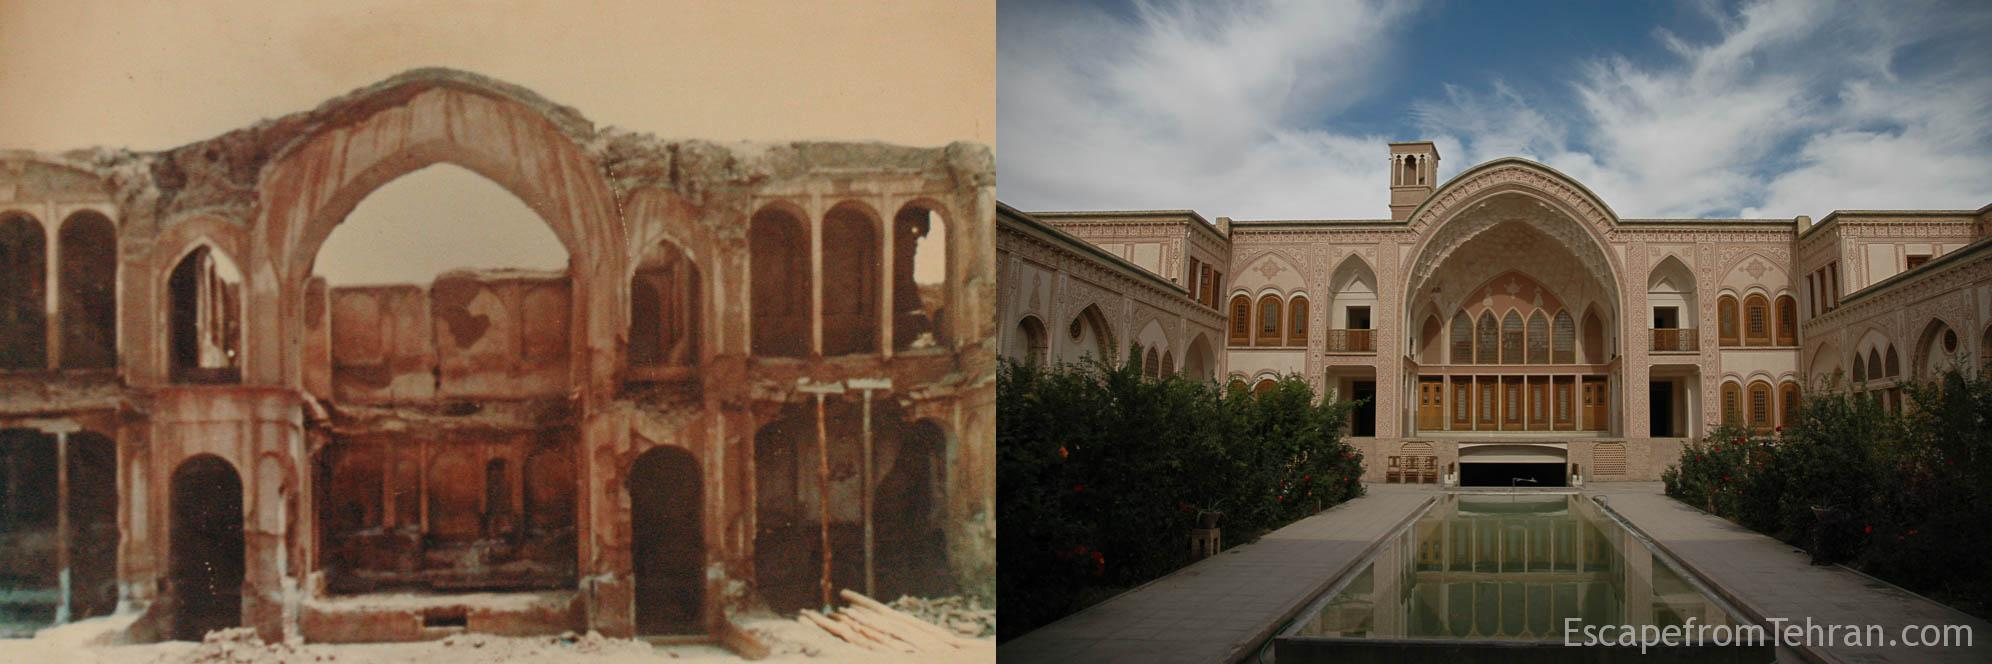 Before and after of Ameri House, the 230-year-old home of a former military commander based in Kashan, Iran.